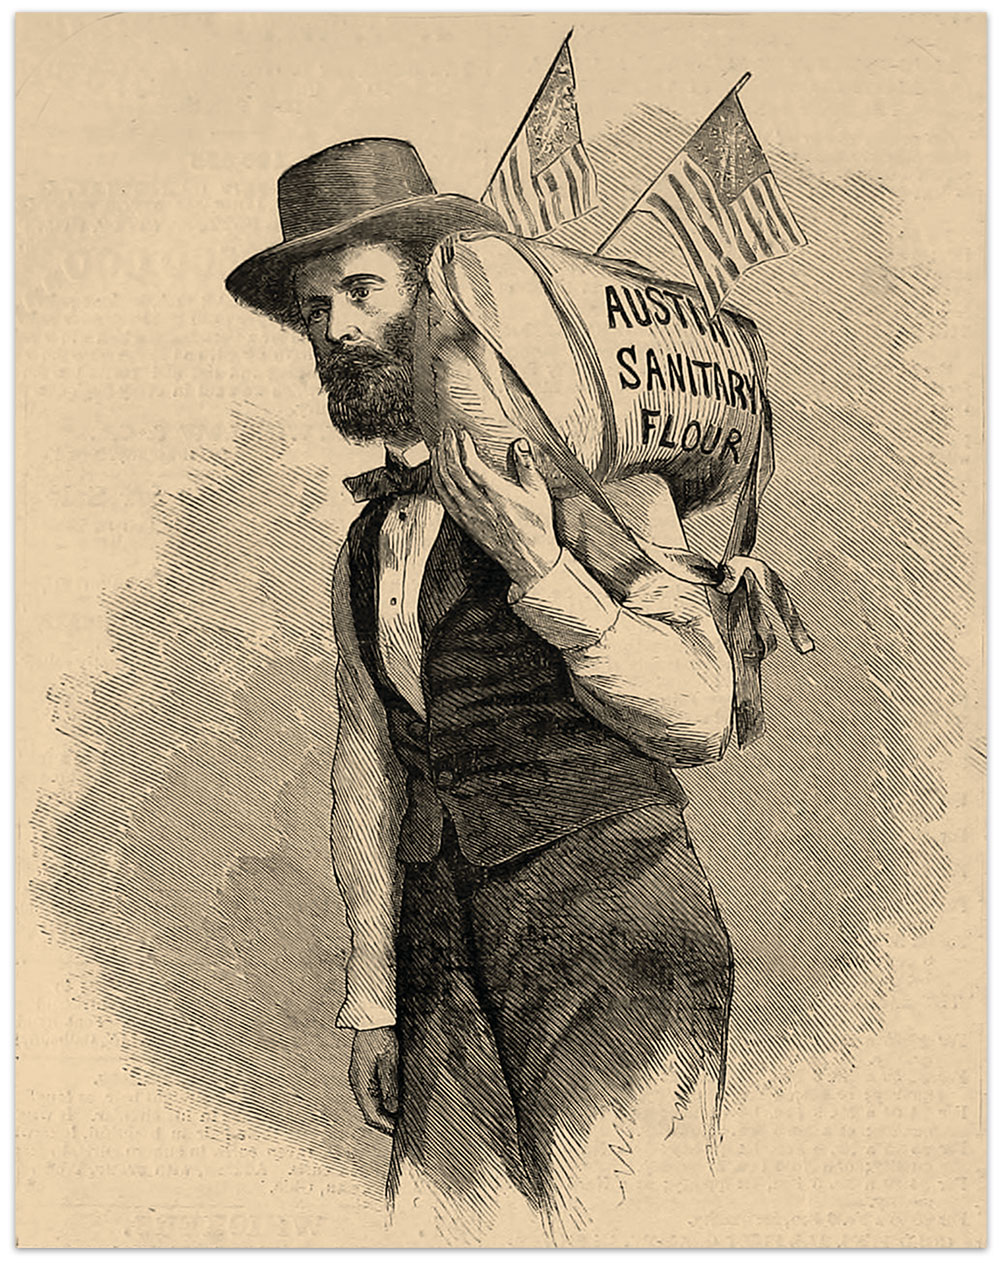 This illustration, based on the carte de visite by George H. Johnson, appeared in the Jan. 21, 1865, issue of Harper's Weekly.